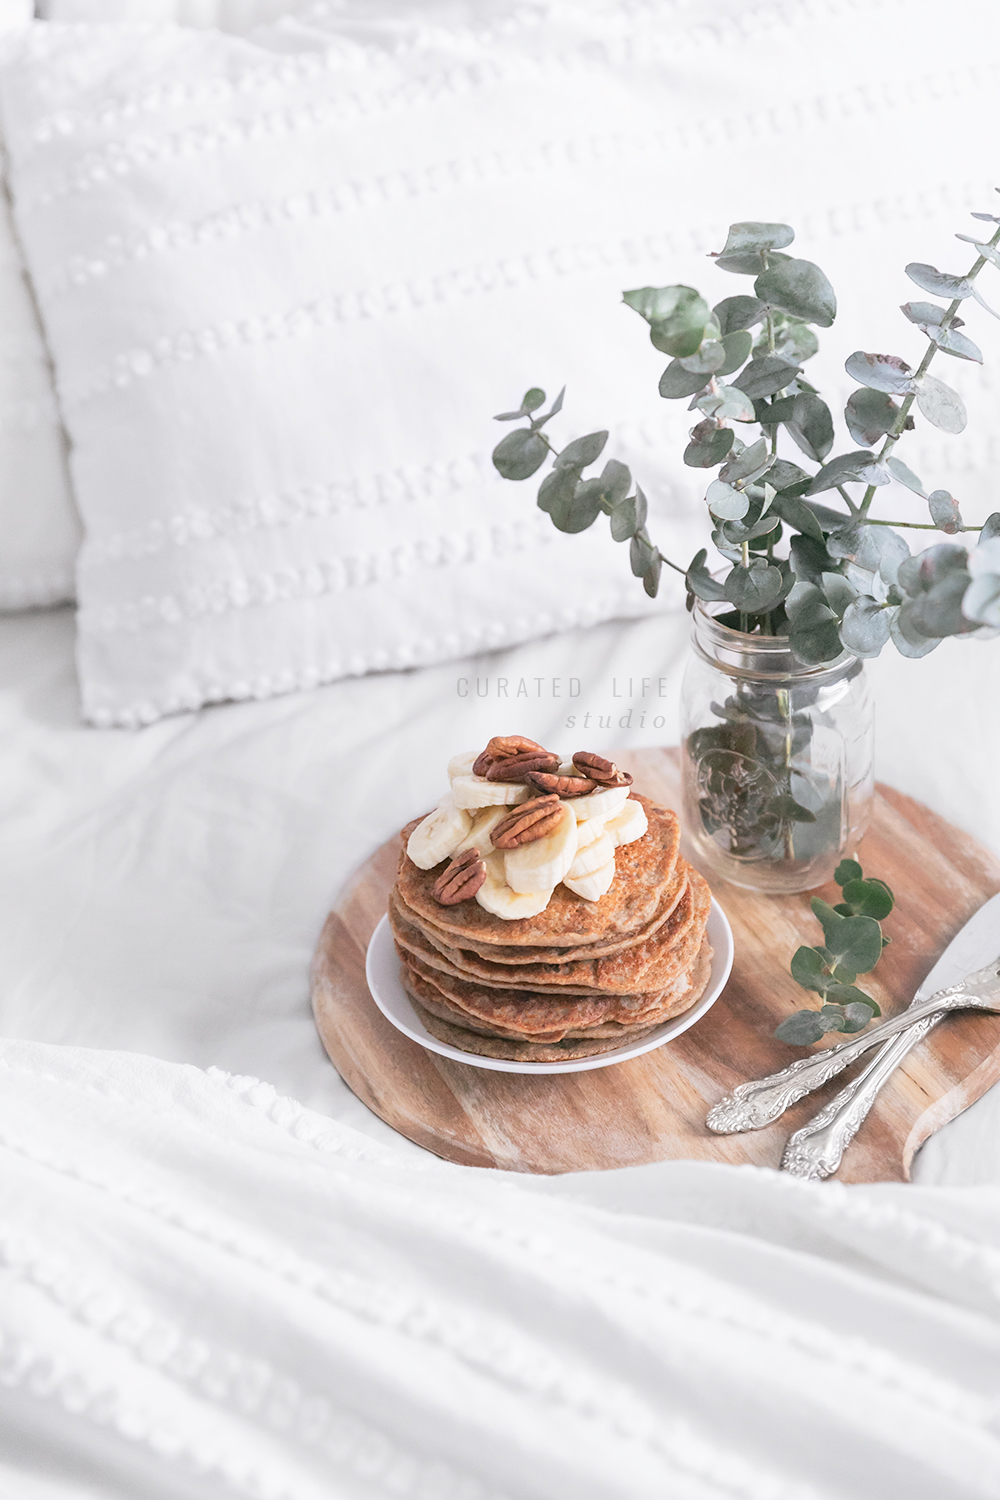 Looking down on a bed draped in white linen, and a stack of fluffy banana pancakes sitting on a rustic wooden tray, beside a jar of eucalyptus leaves.